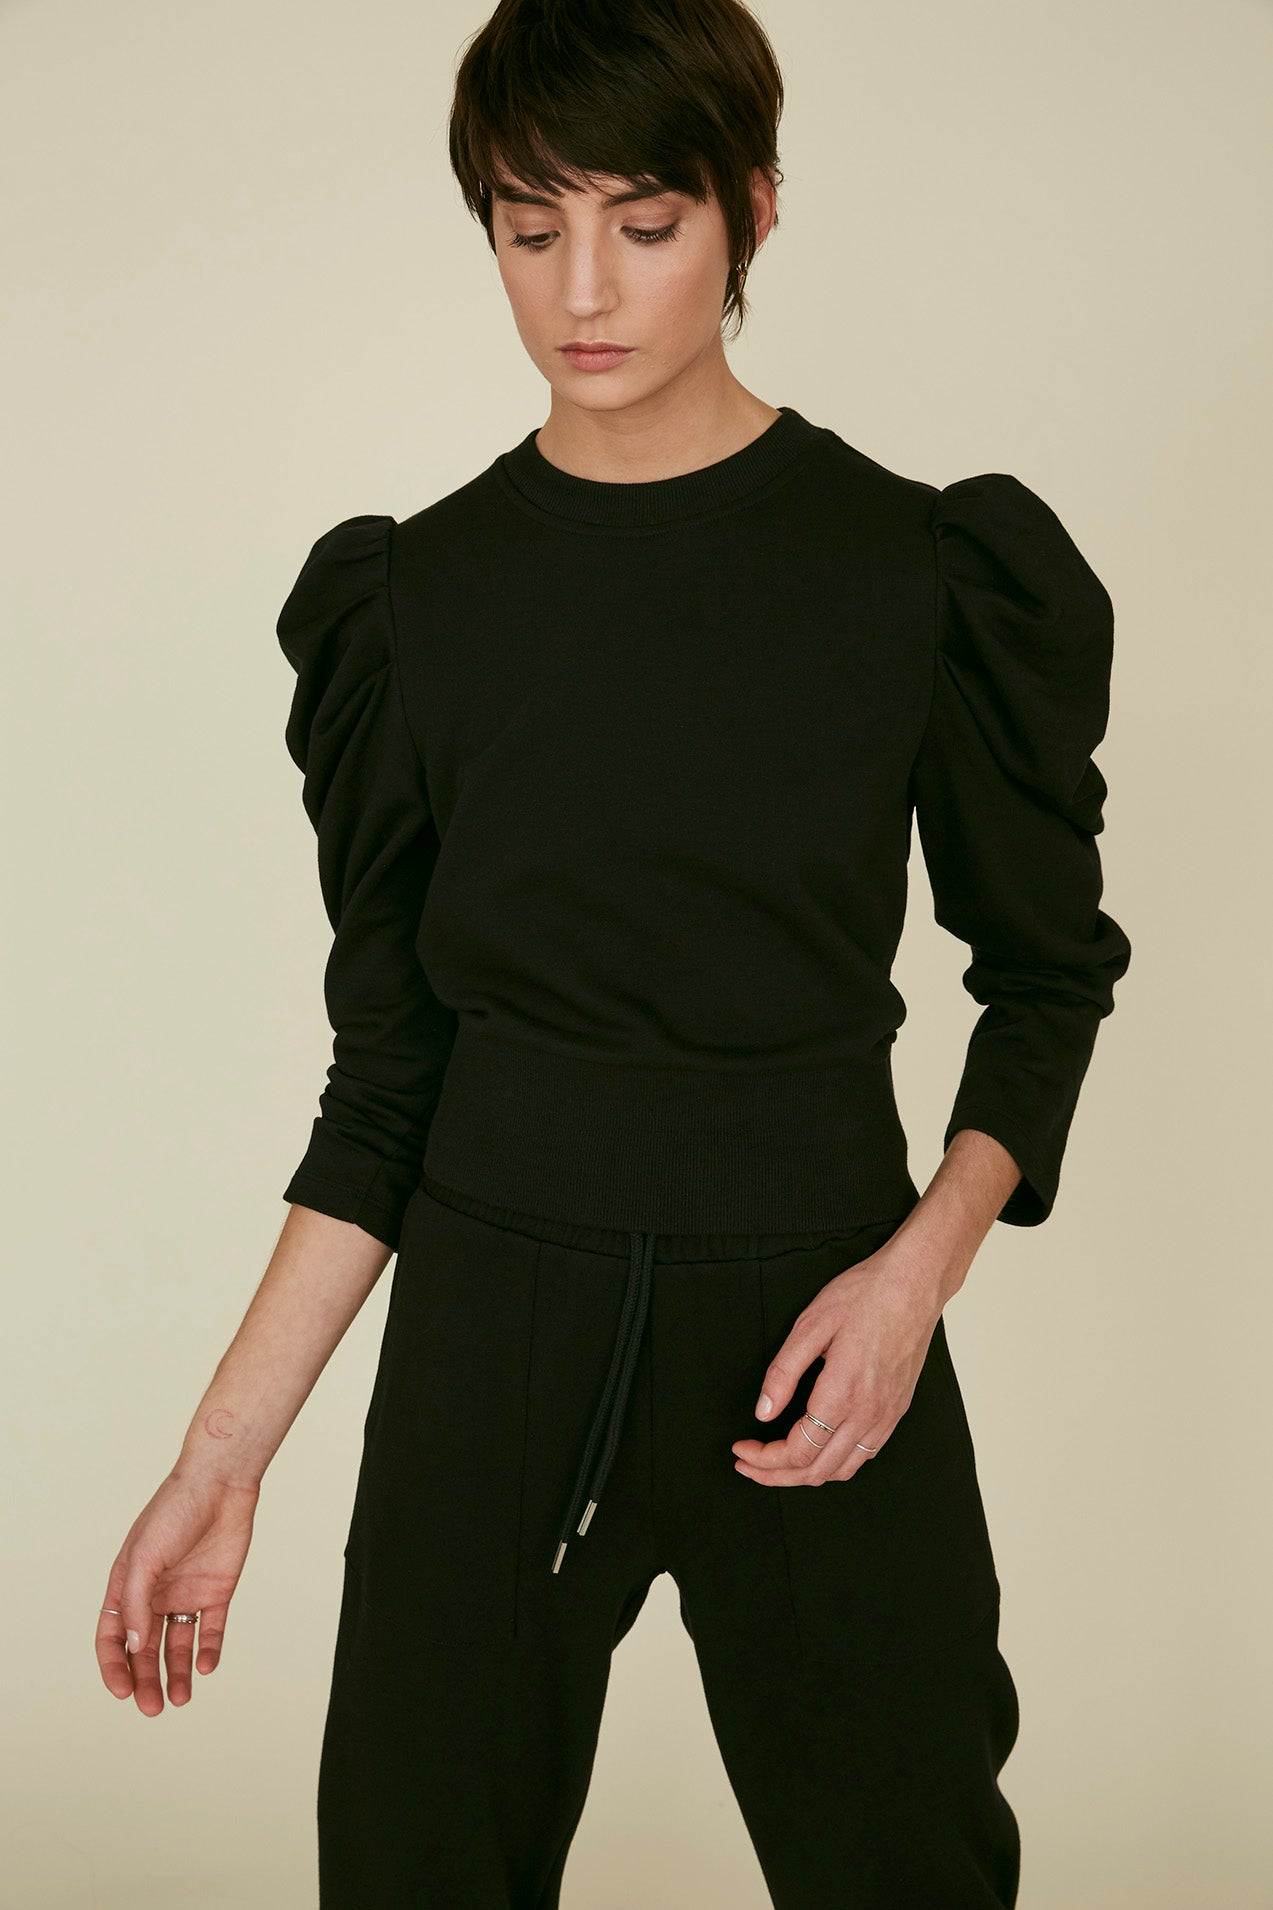 The Just Enough Puff Sweatshirt in Black